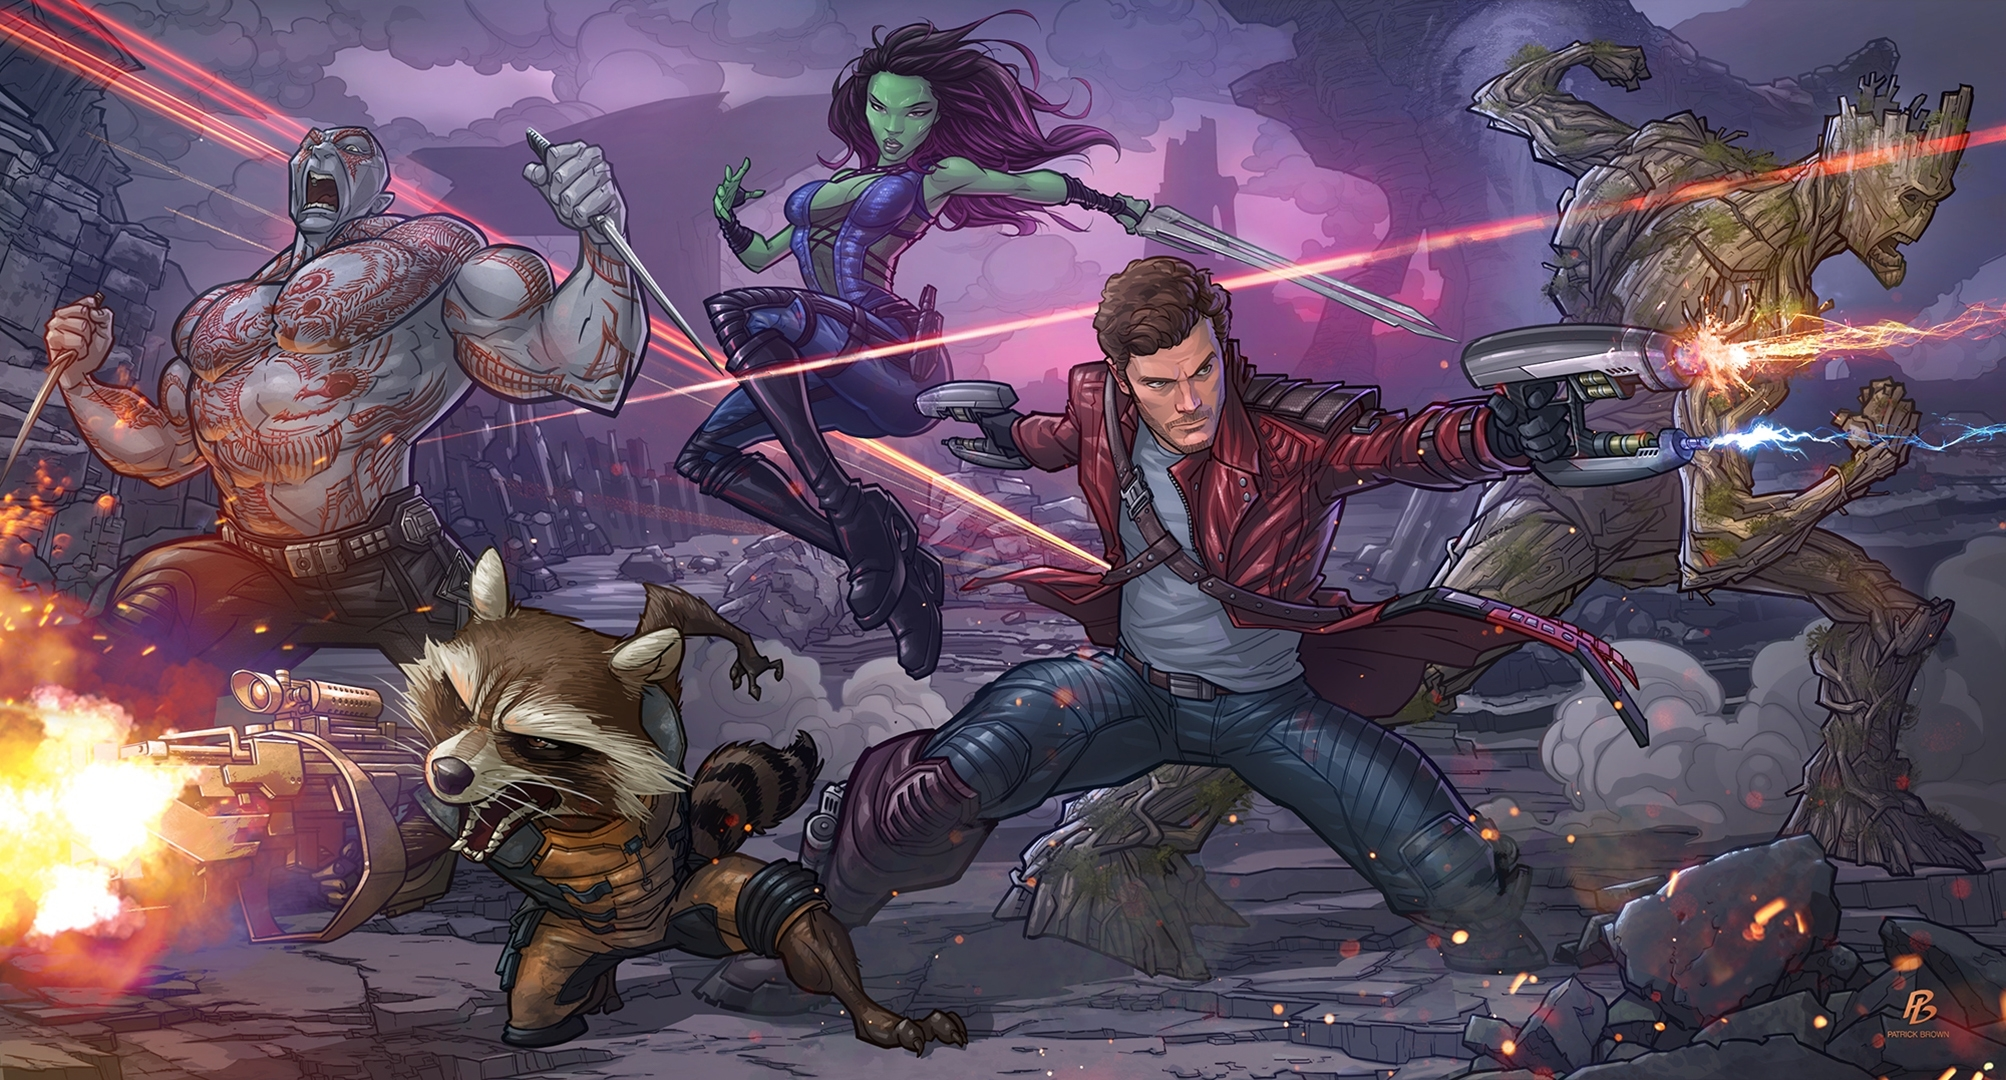 173 rocket raccoon hd wallpapers | background images - wallpaper abyss